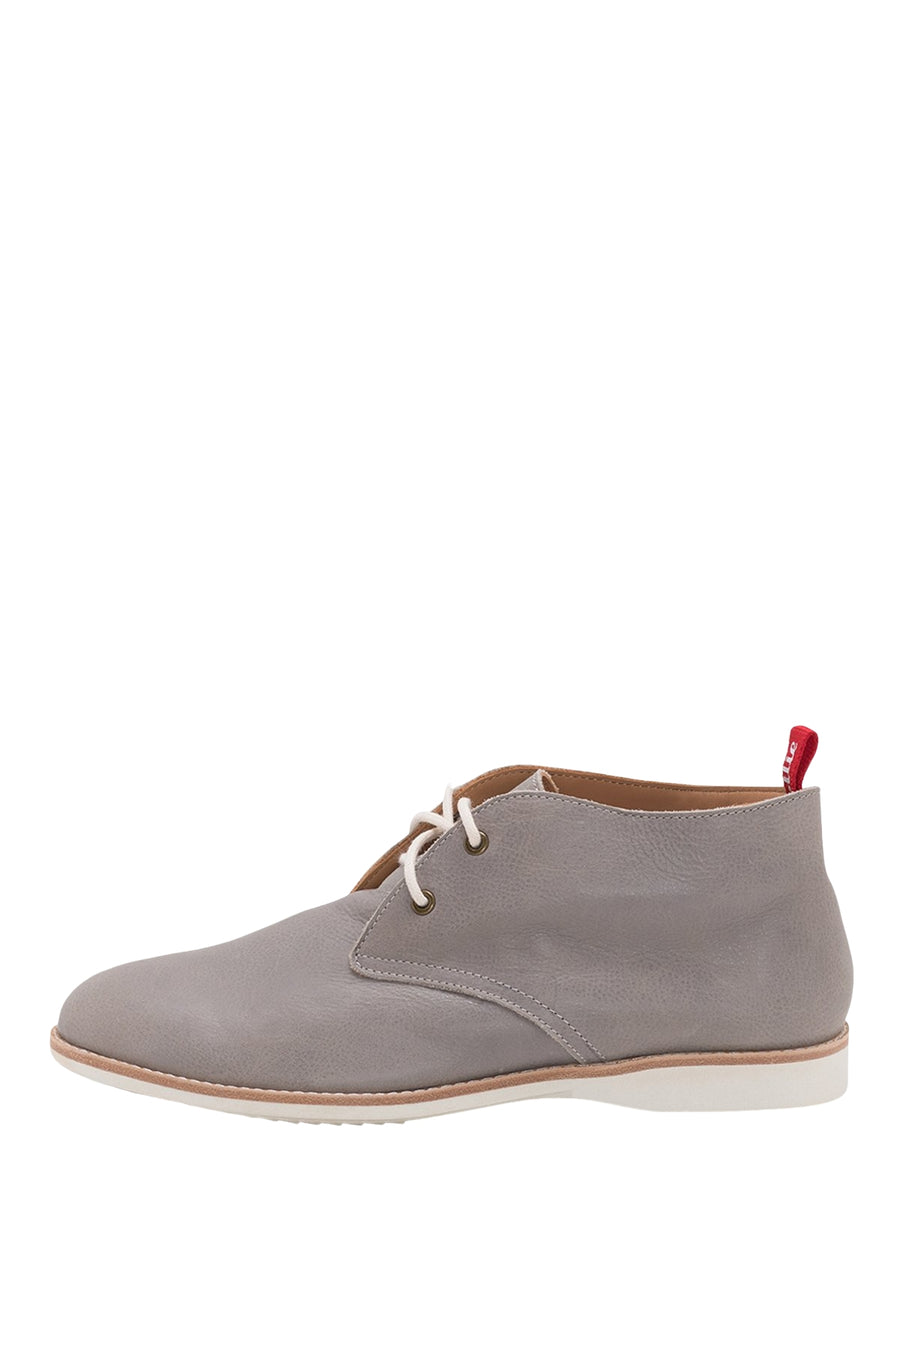 Chukka Boot - Concrete - Shop Online At Mookah - mookah.com.au